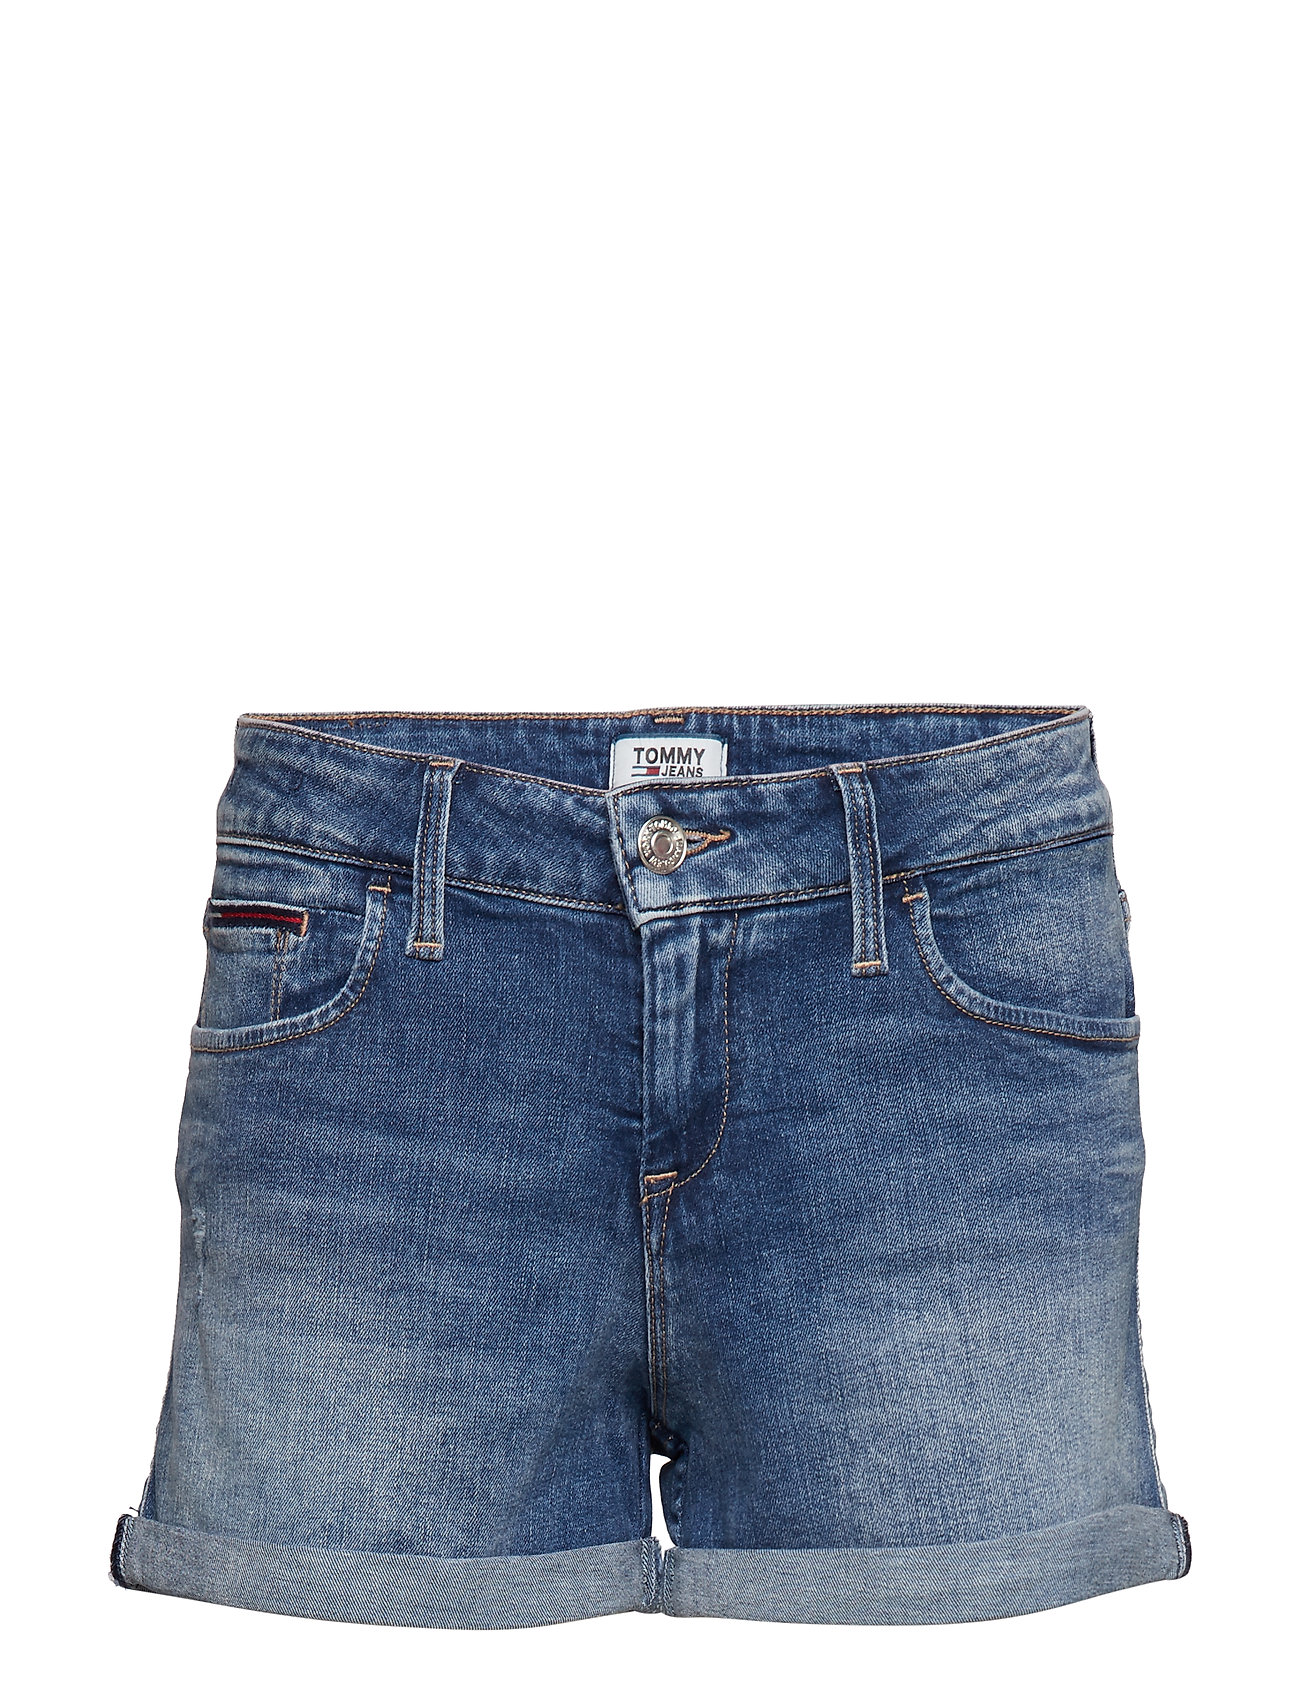 Tommy Jeans CLASSIC DENIM SHORT JYMBS - JOY MID BLUE STR